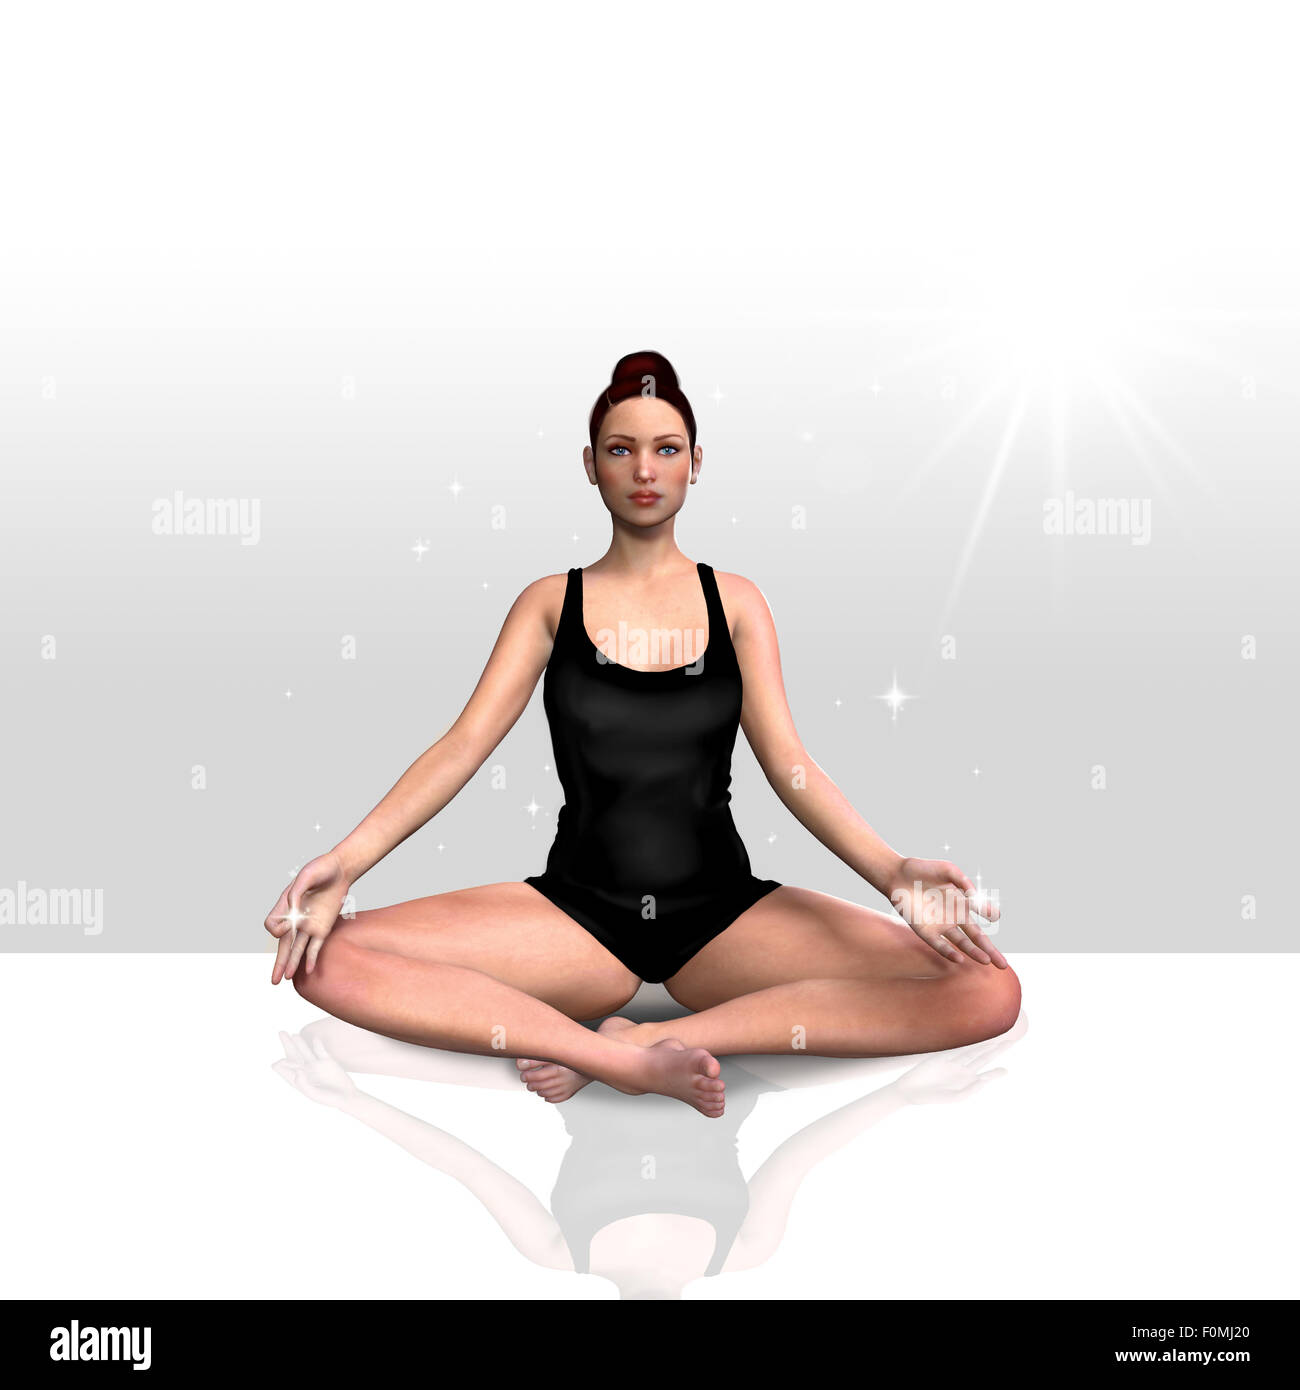 3d render of a female doing yoga over a clean background Stock Photo